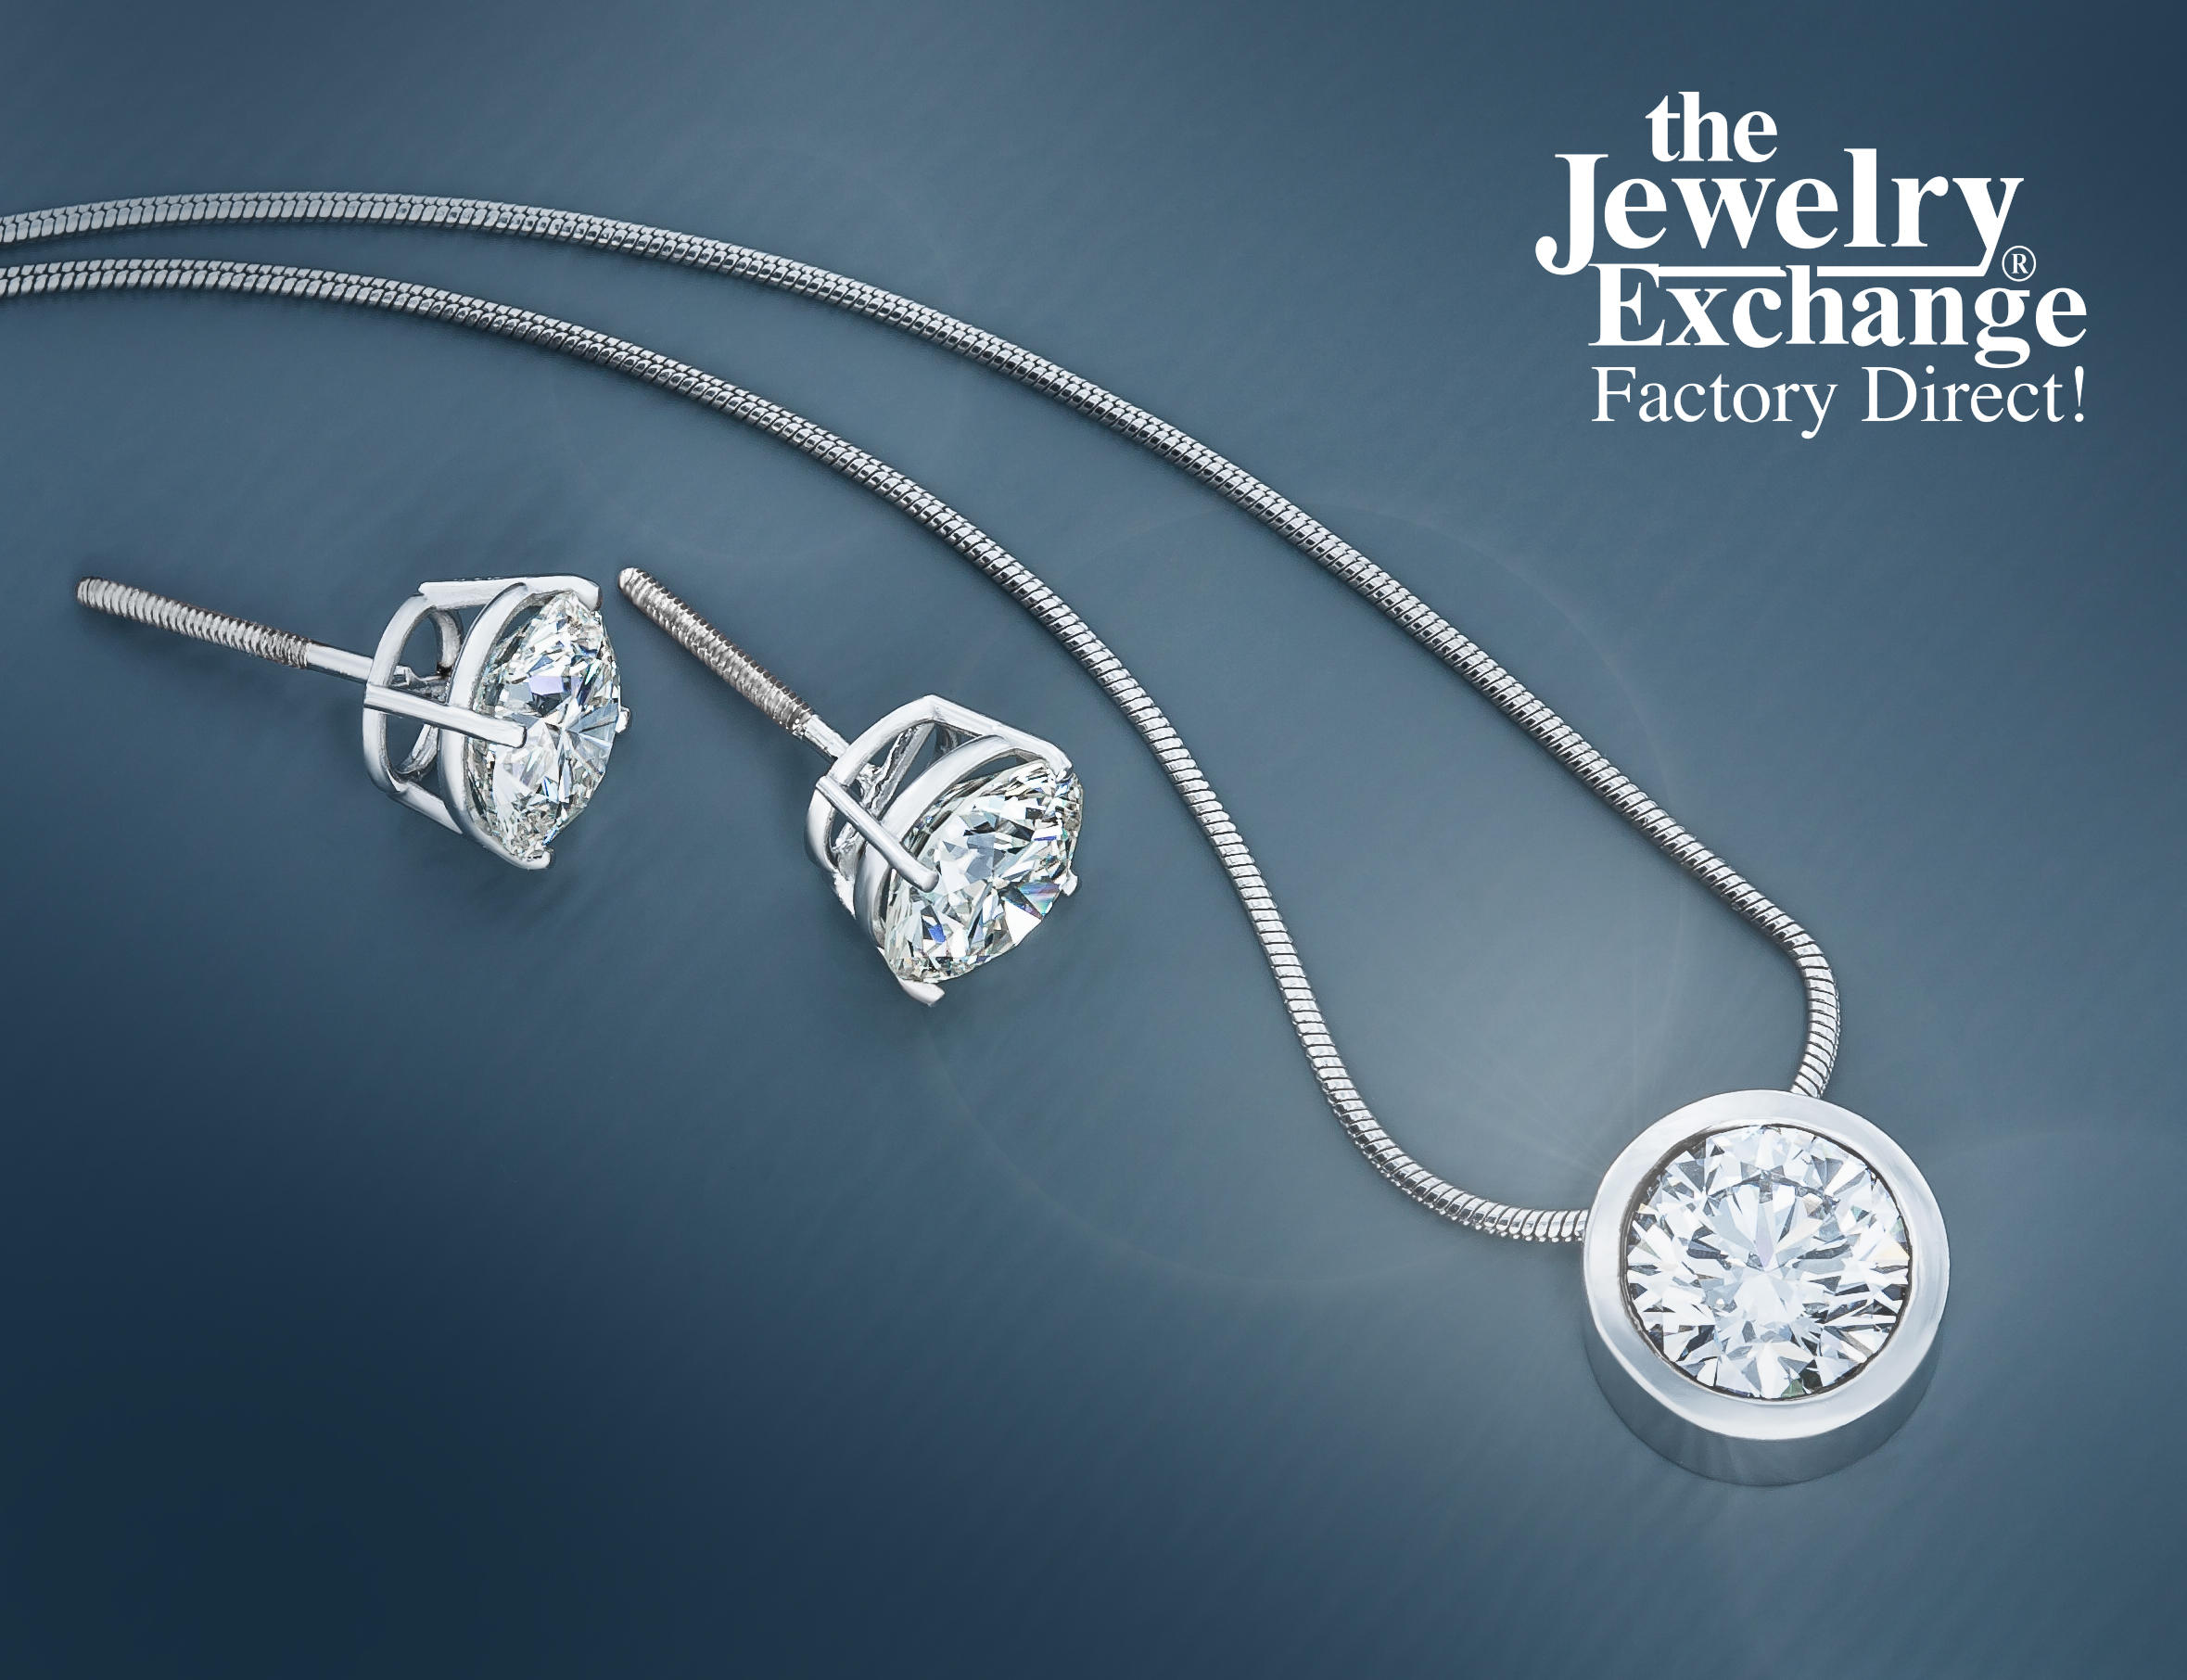 the jewelry exchange factory direct reviews